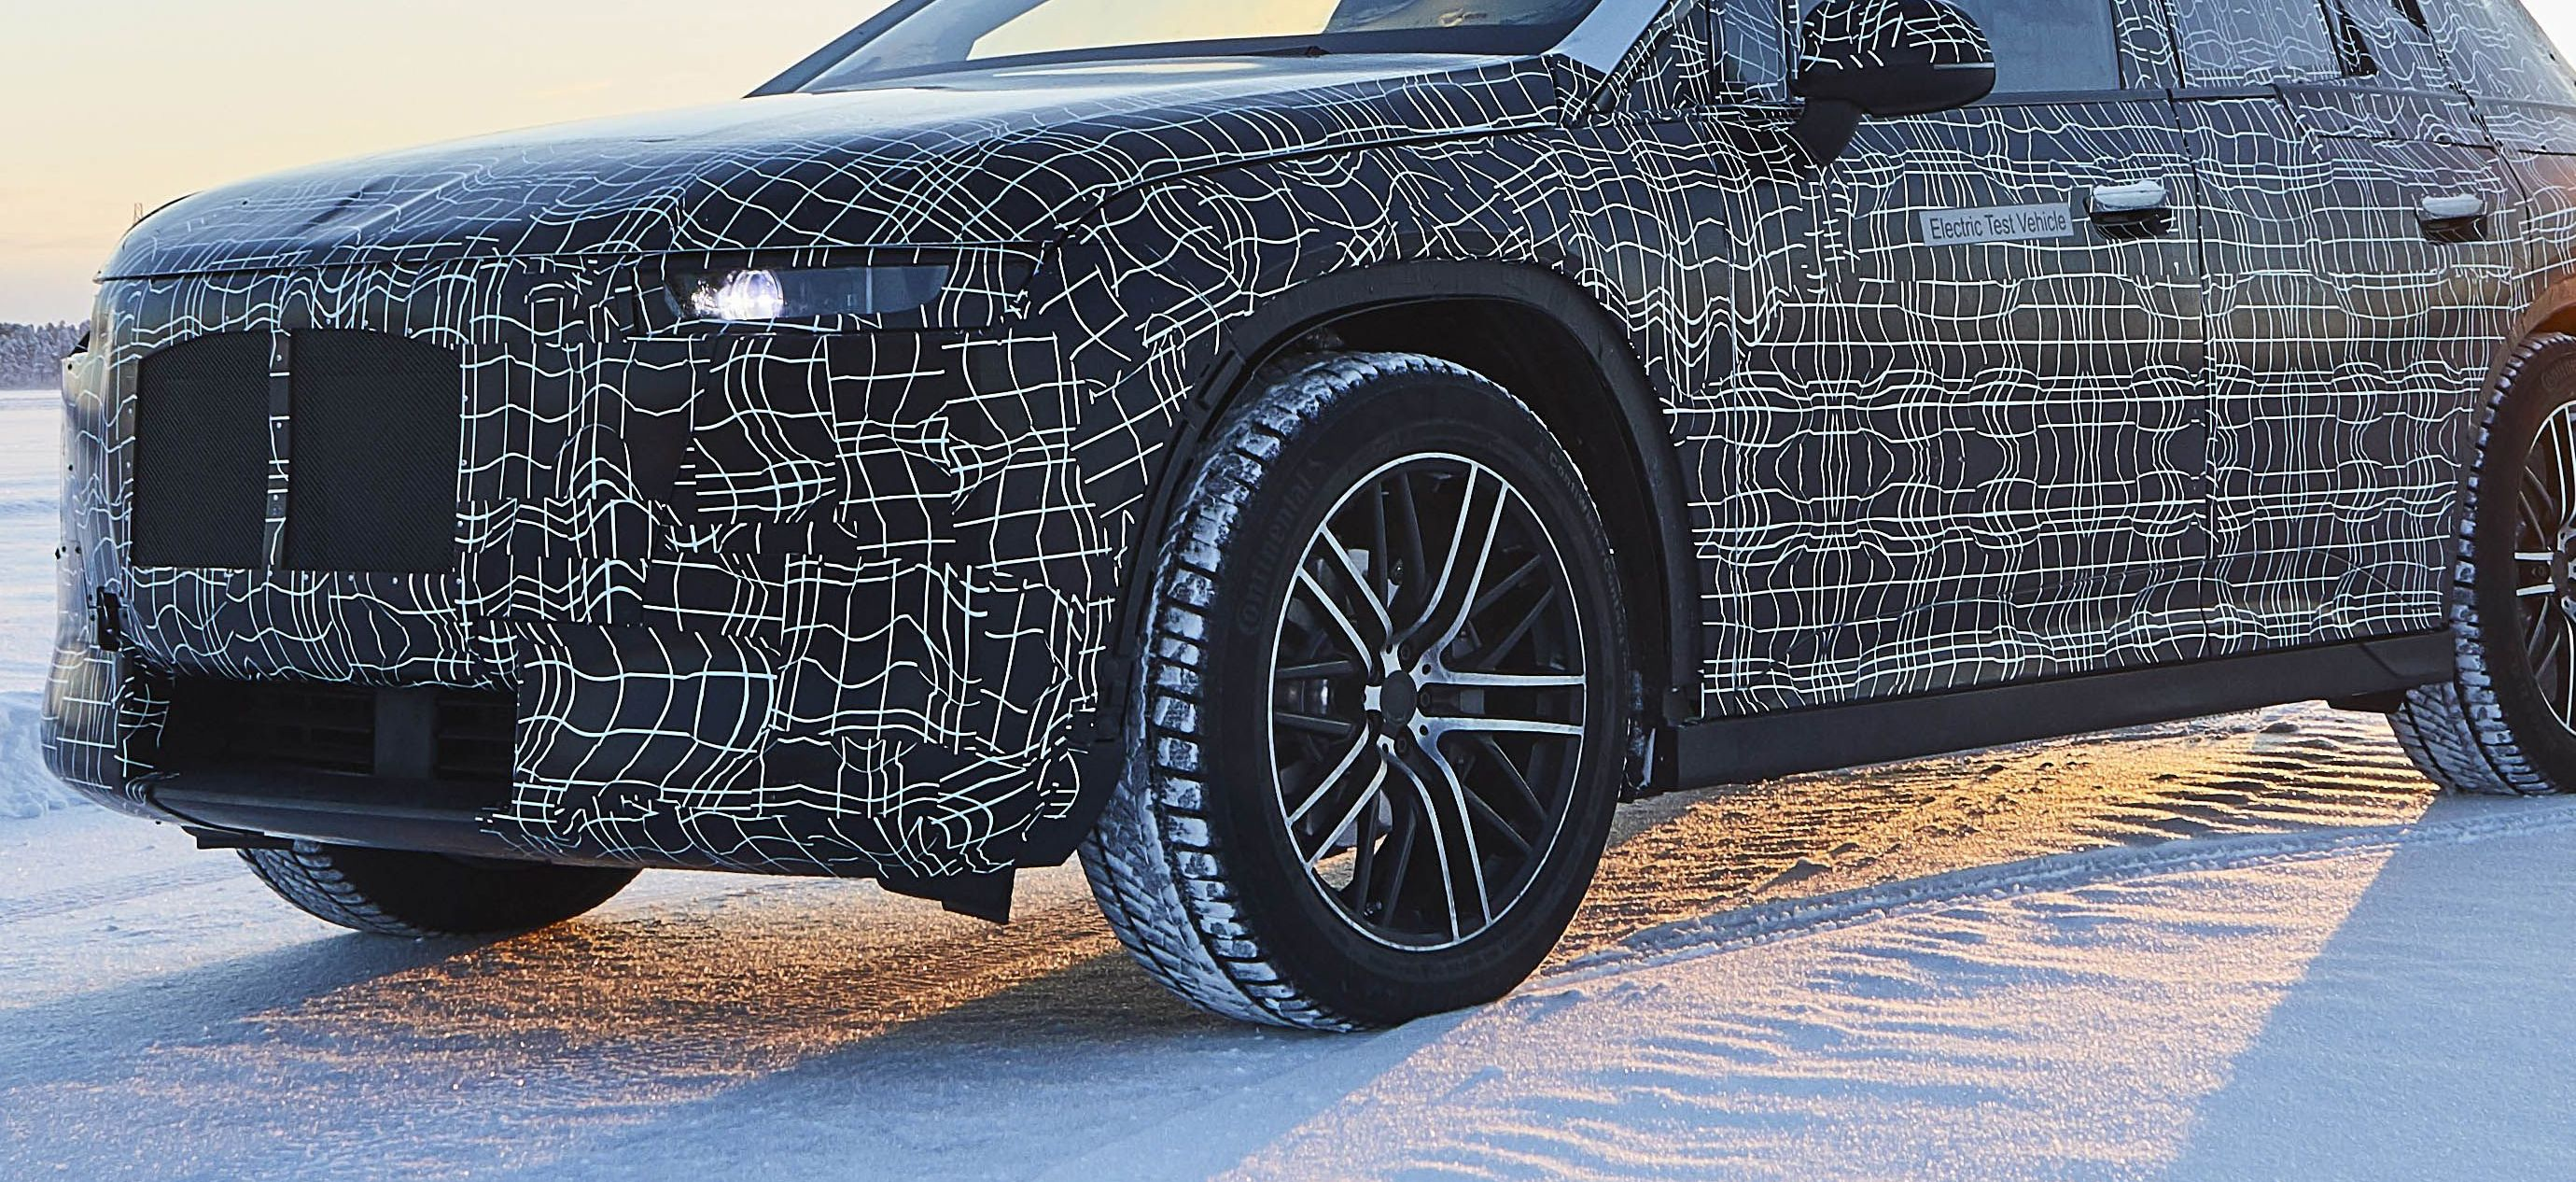 The All-Electric BMW iNext Will Be the Boxy New Bimmer Tech Flagship